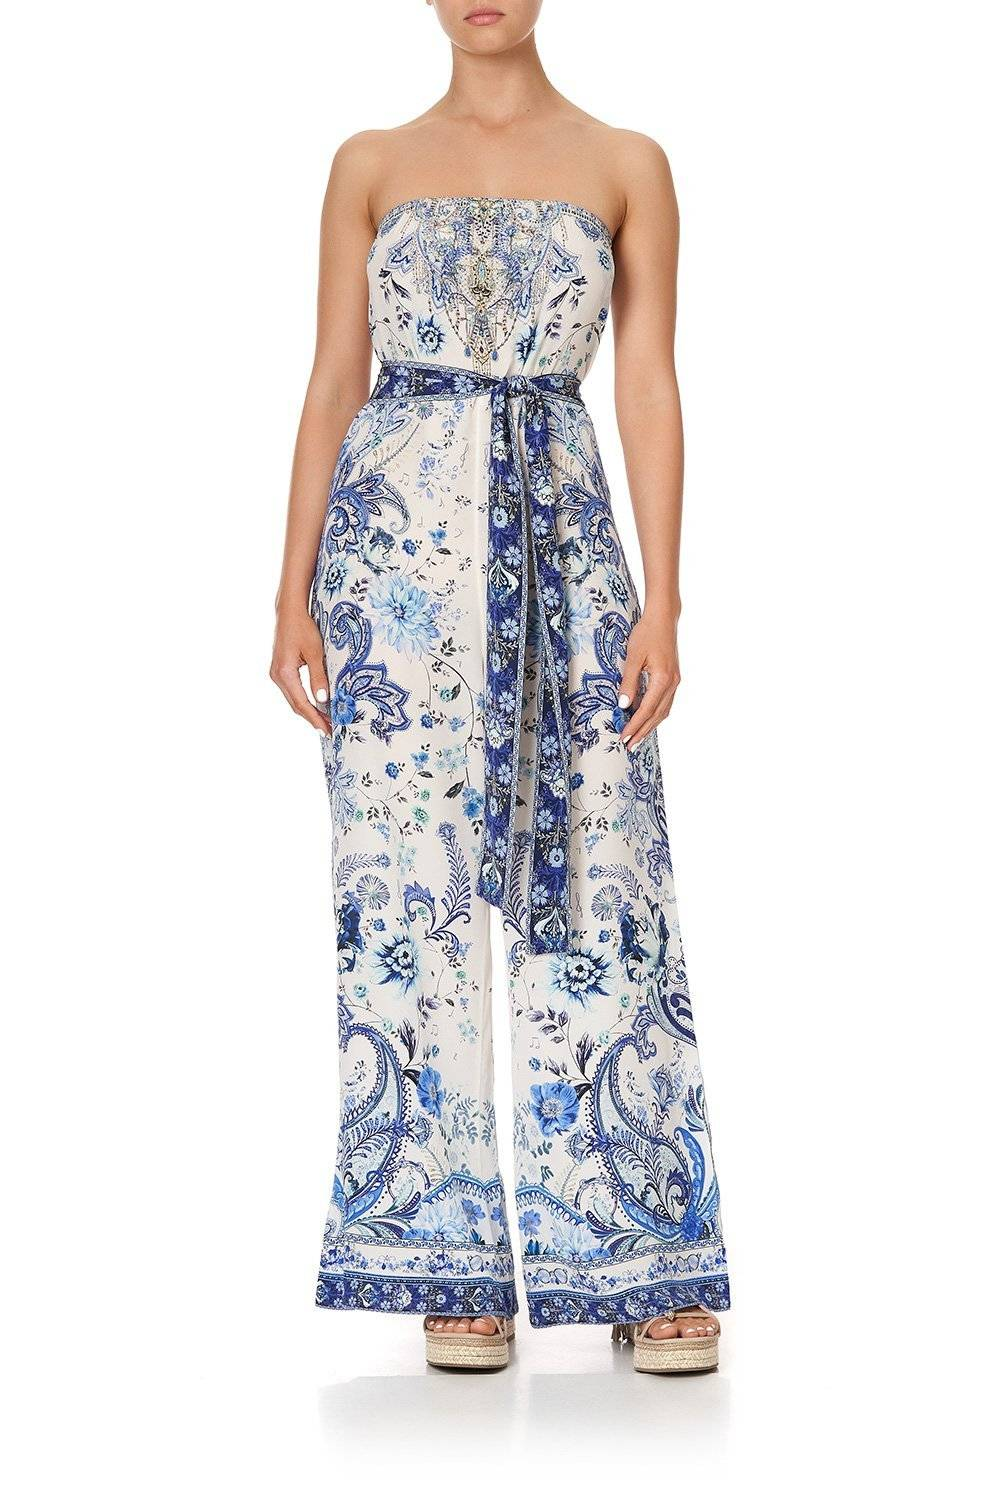 CAMILLA white and blue floral strapless jumpsuit with tie belt